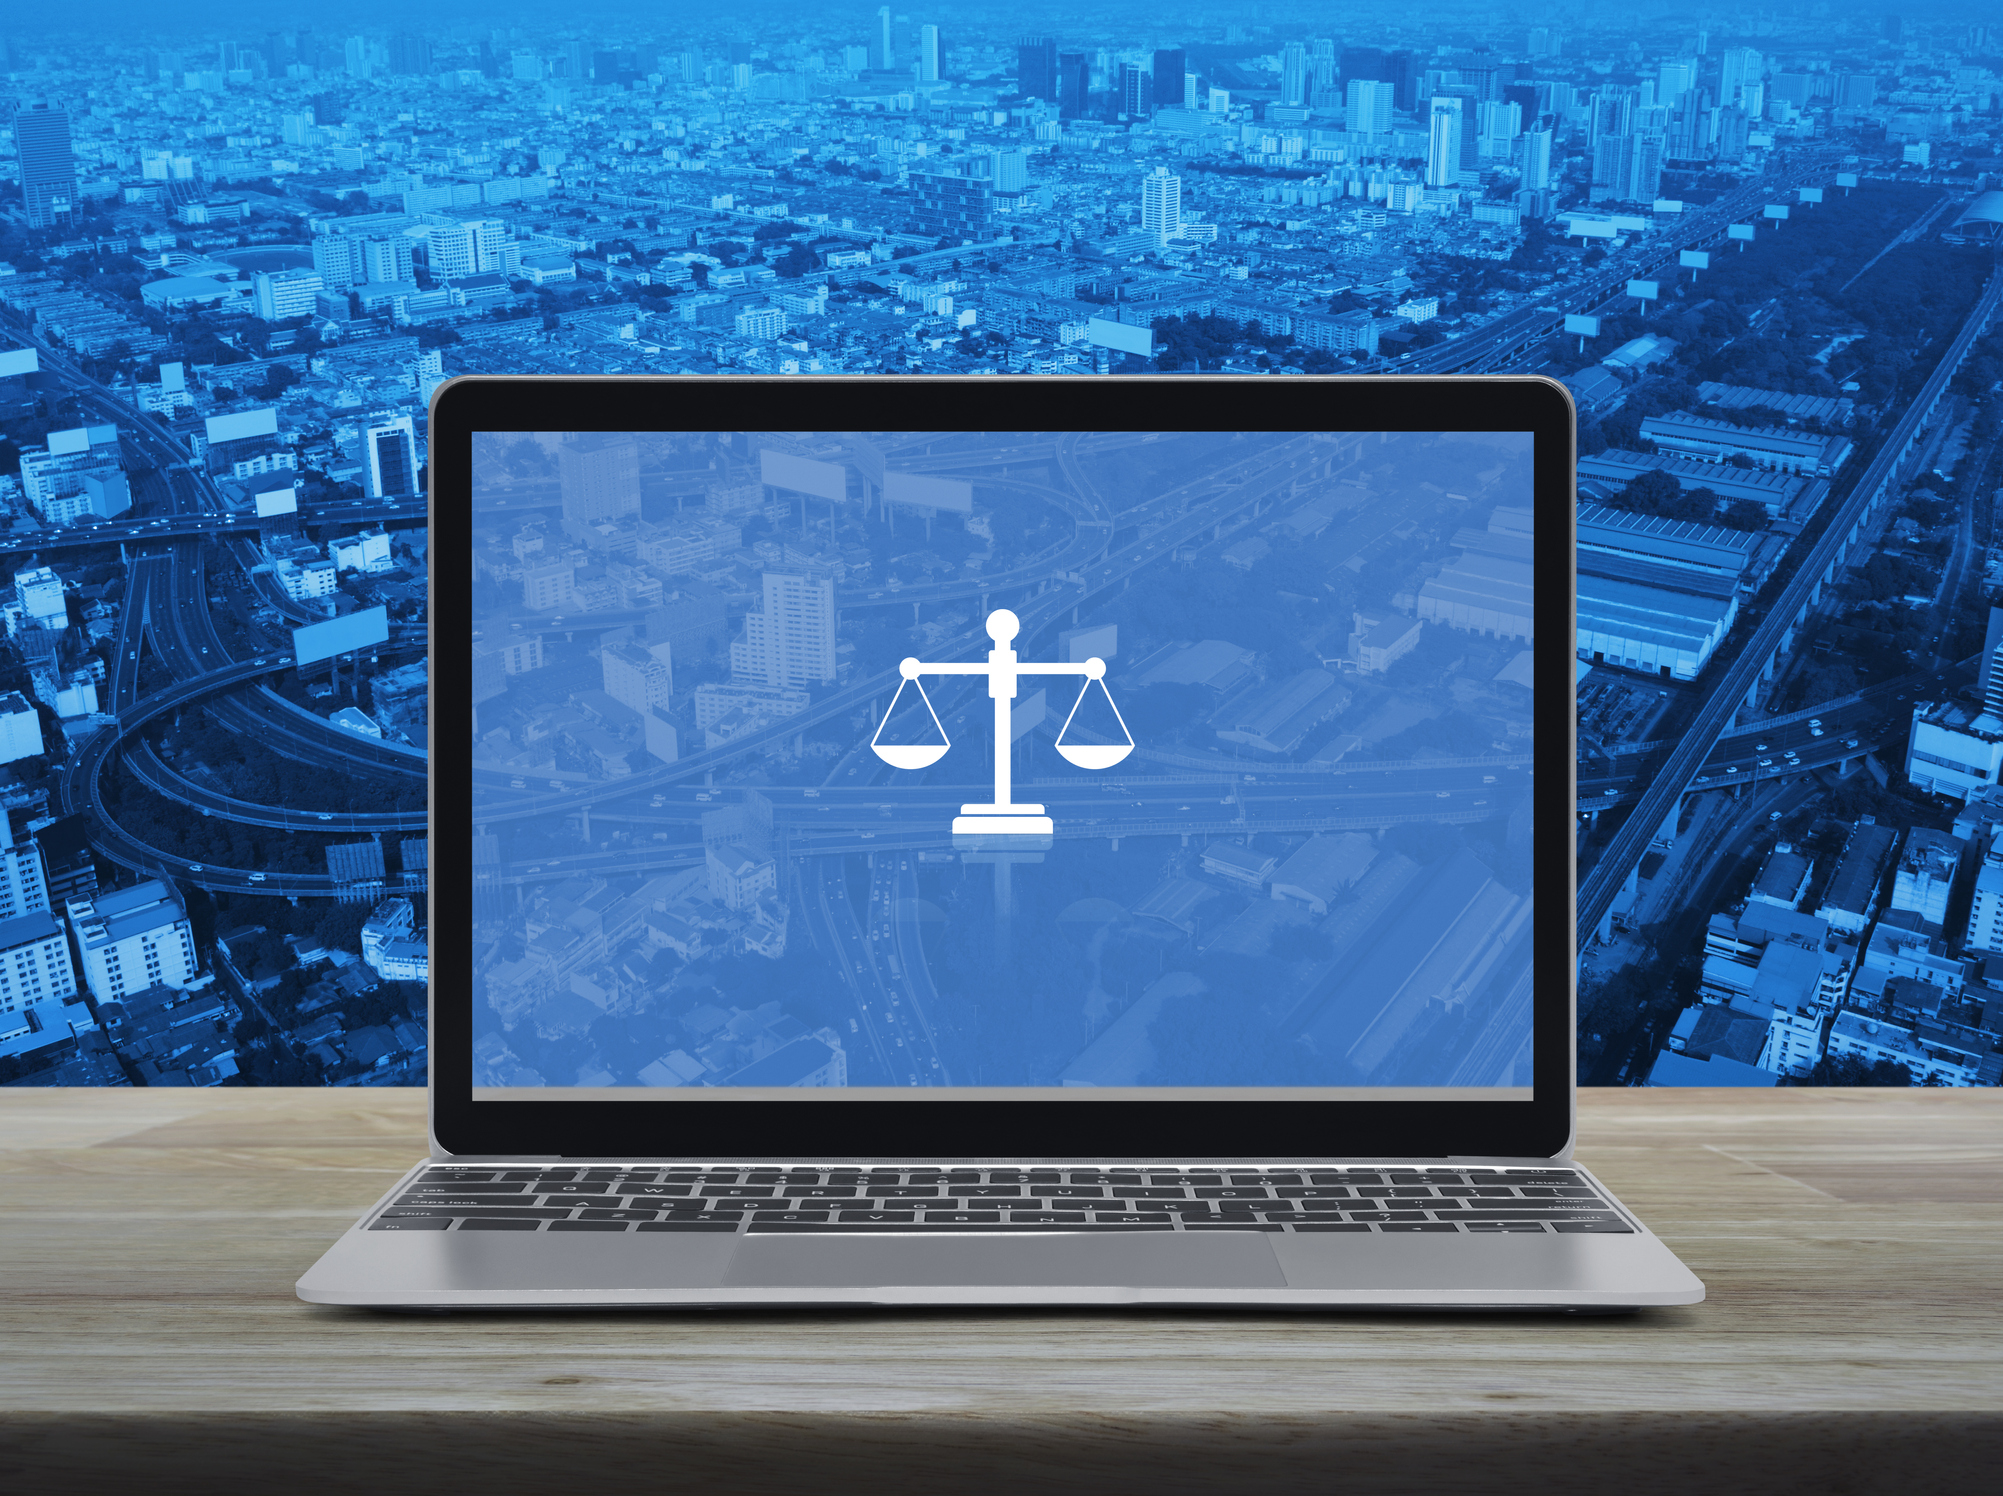 Law flat icon with modern laptop computer on wooden table over city tower, street, expressway and skyscraper, Business legal service online concept